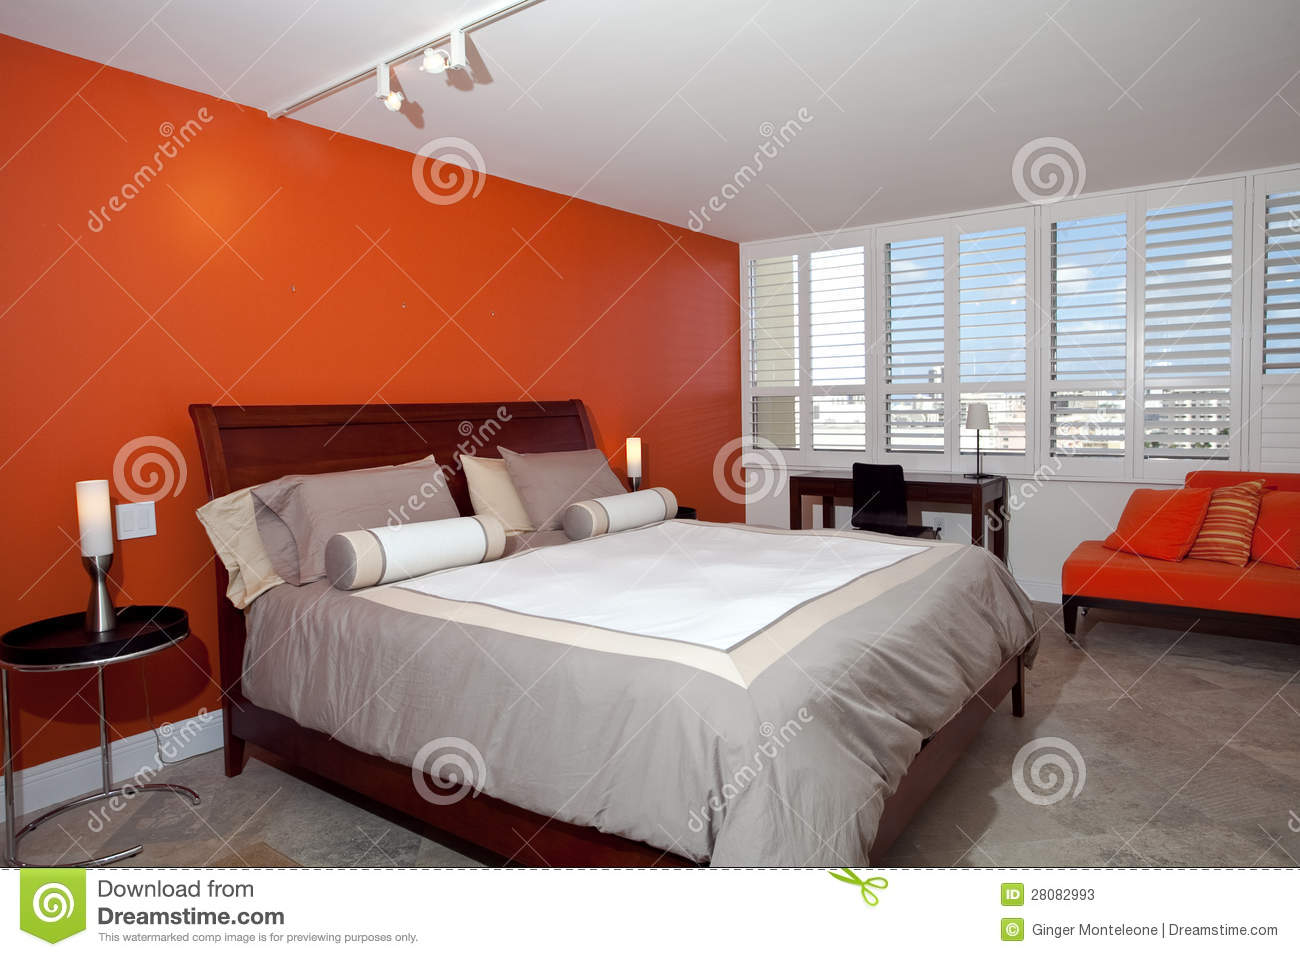 more similar stock images of bedroom with burnt orange wall